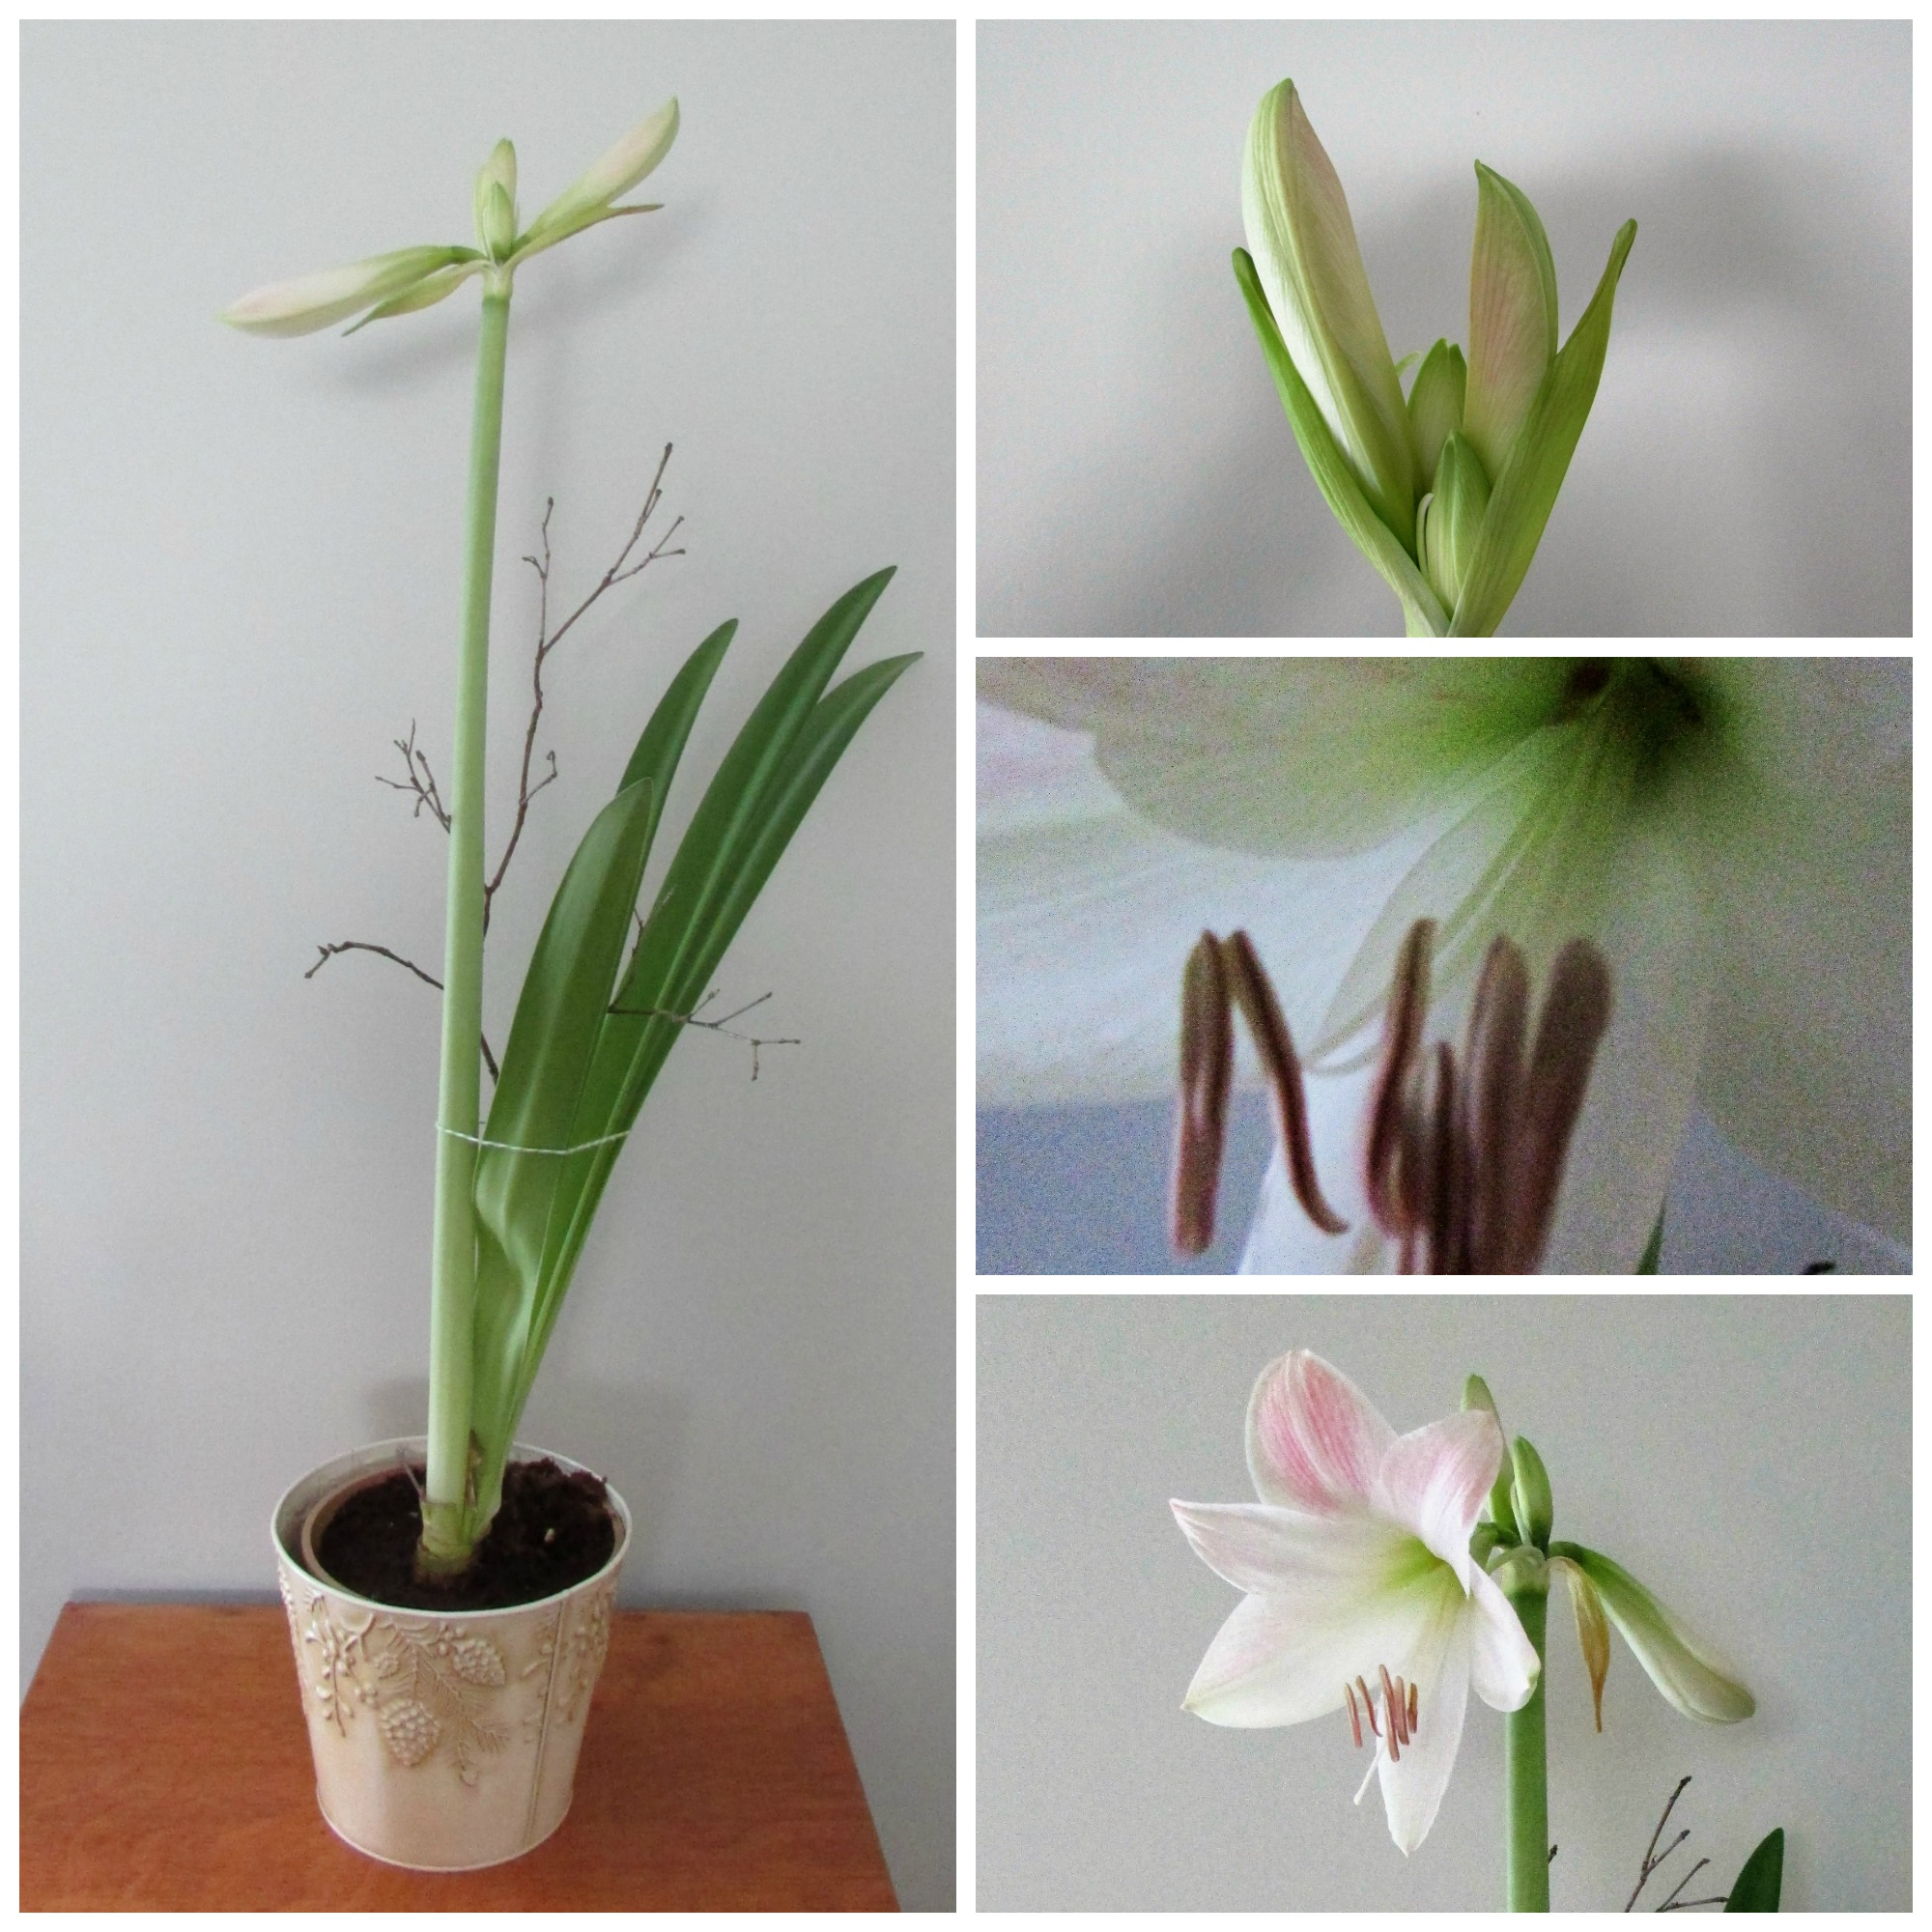 Plants quick tip amaryllis blooms natural supports for Amaryllis bulbe conservation